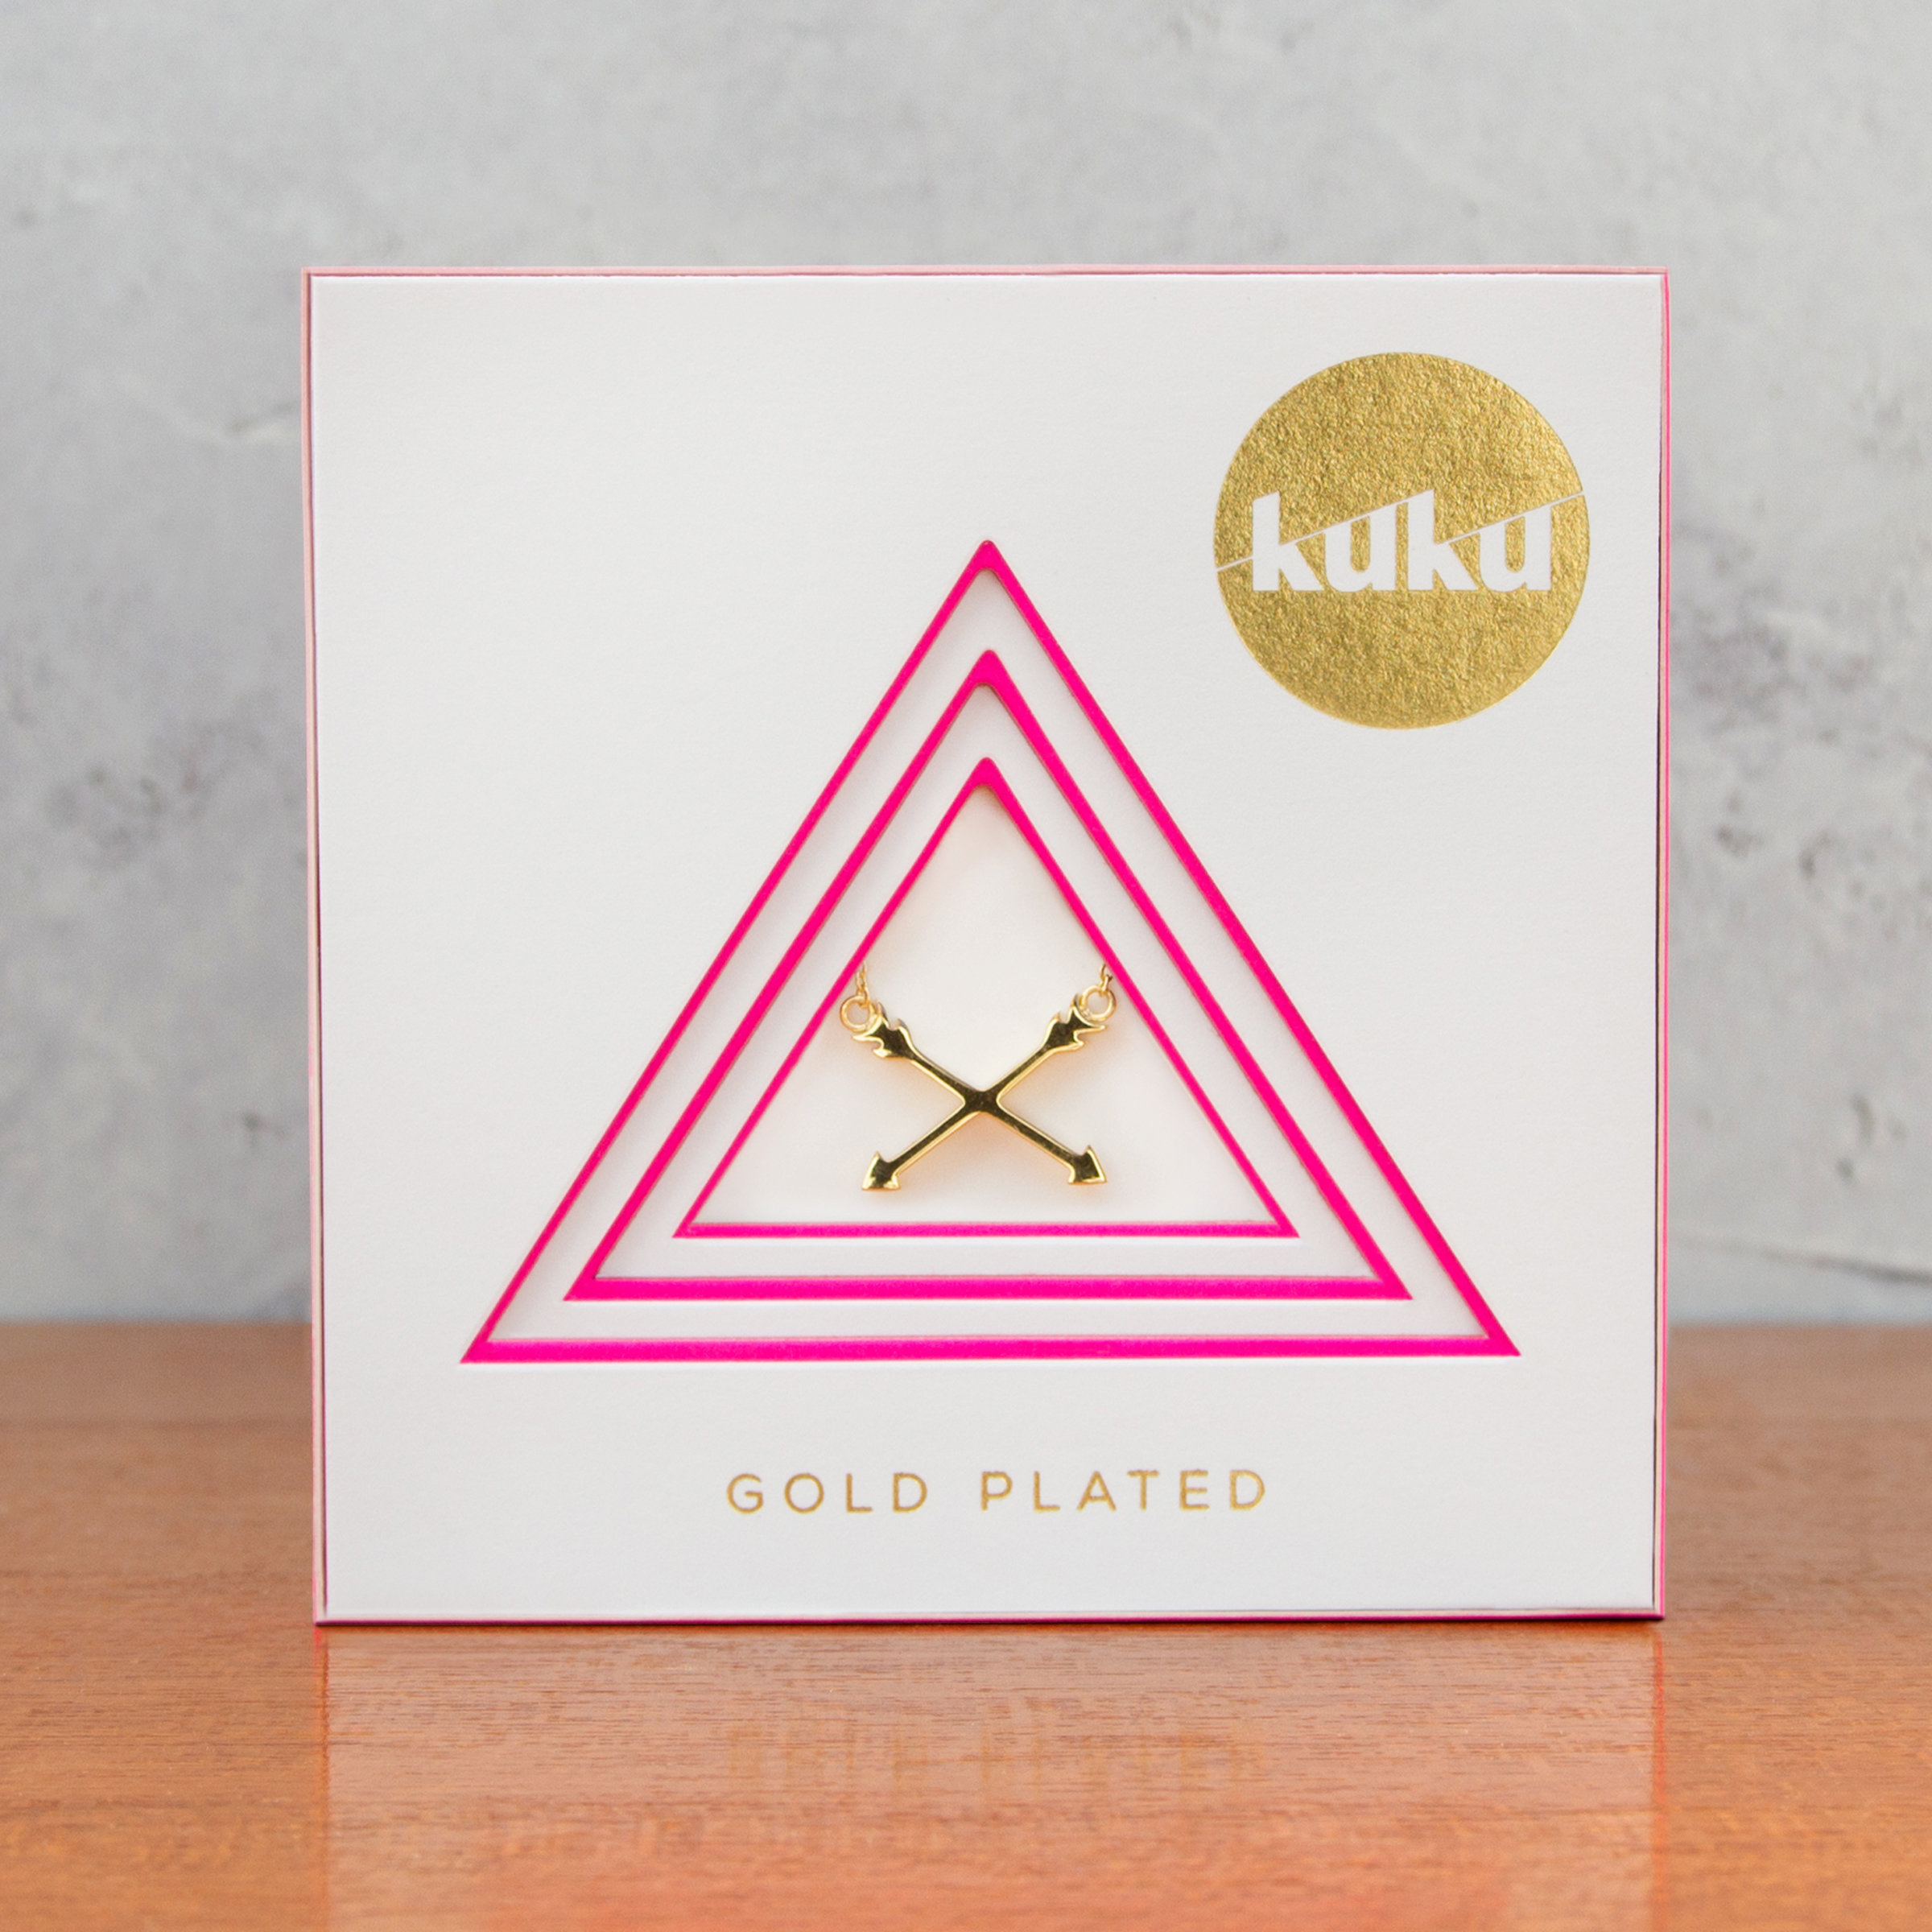 Kuku gold arrow necklace in packaging